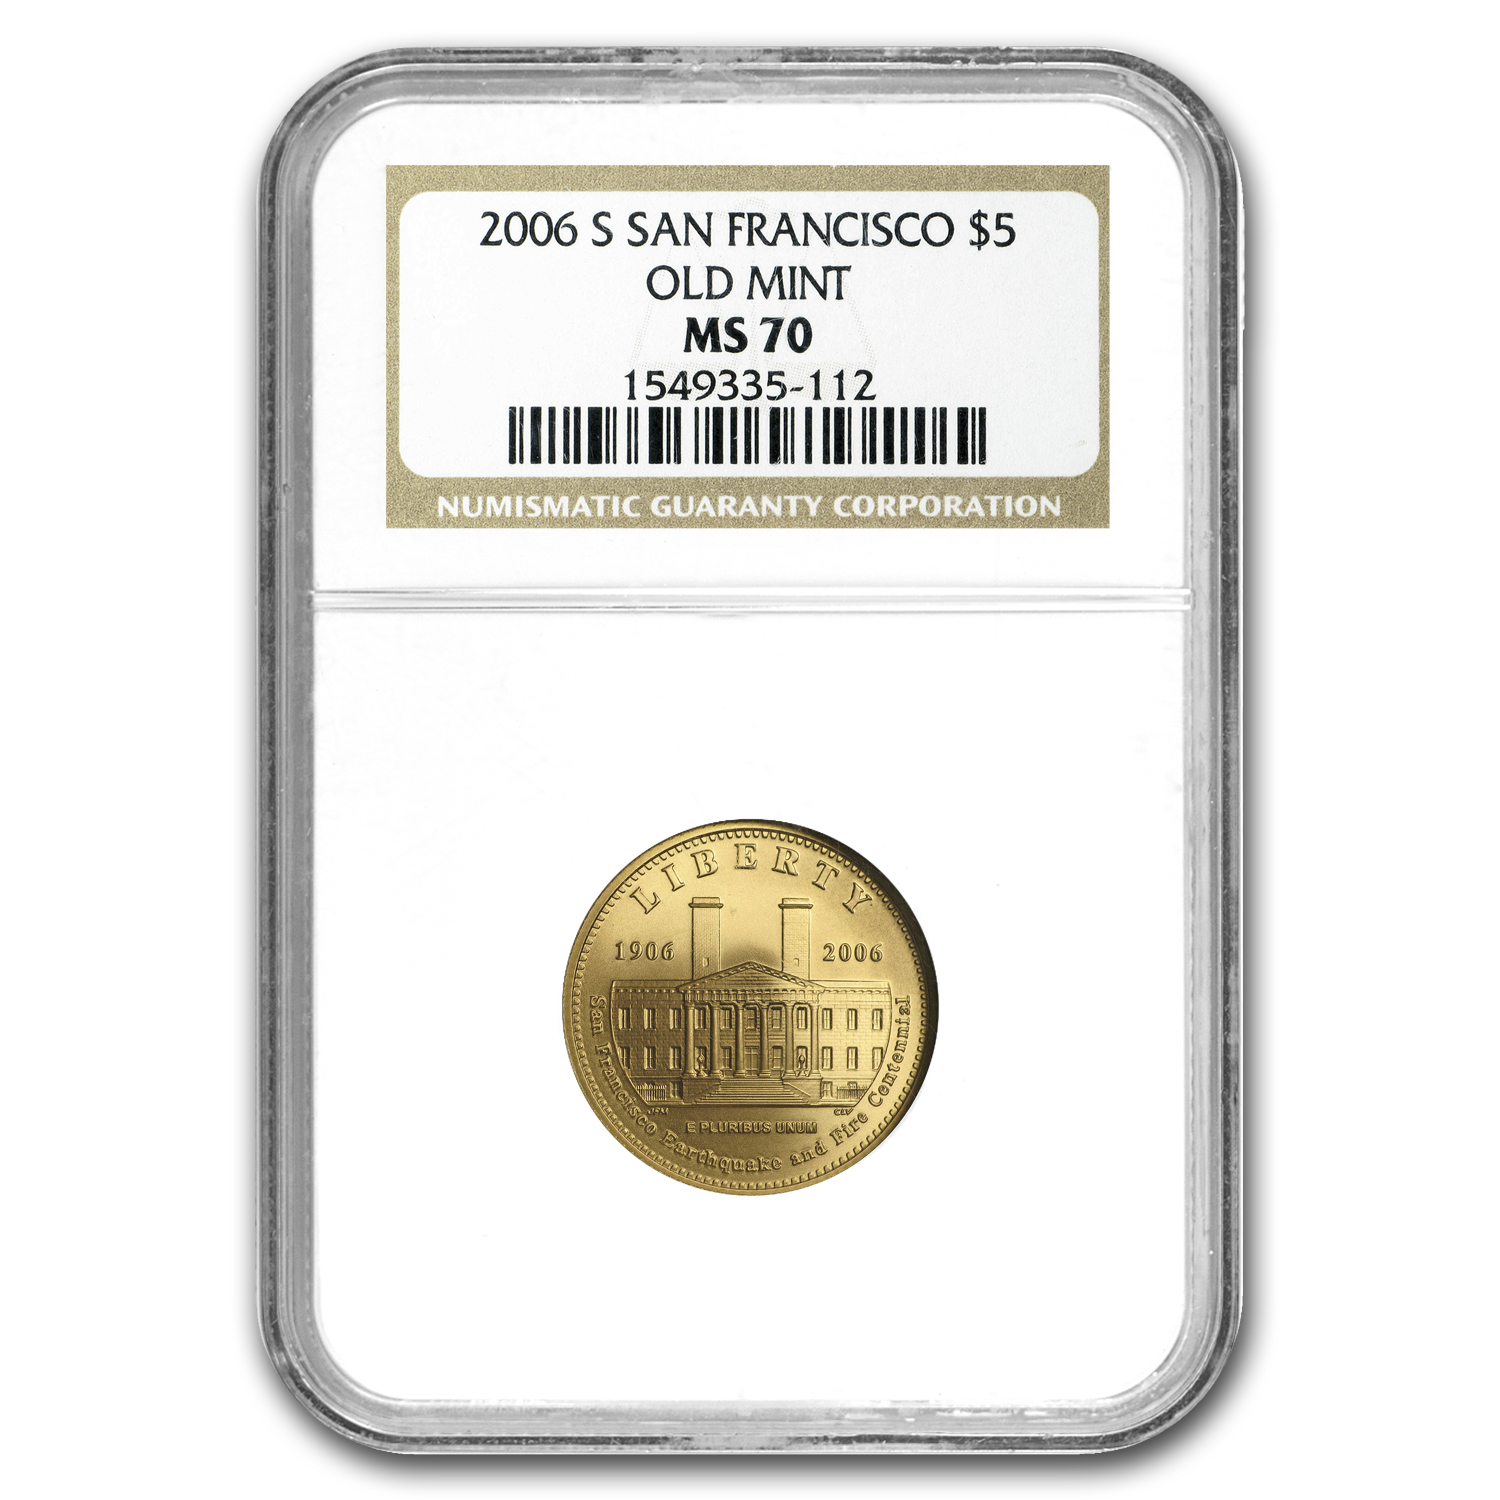 2006-S San Francisco Old Mint - $5 Gold Commemorative - MS-70 NGC